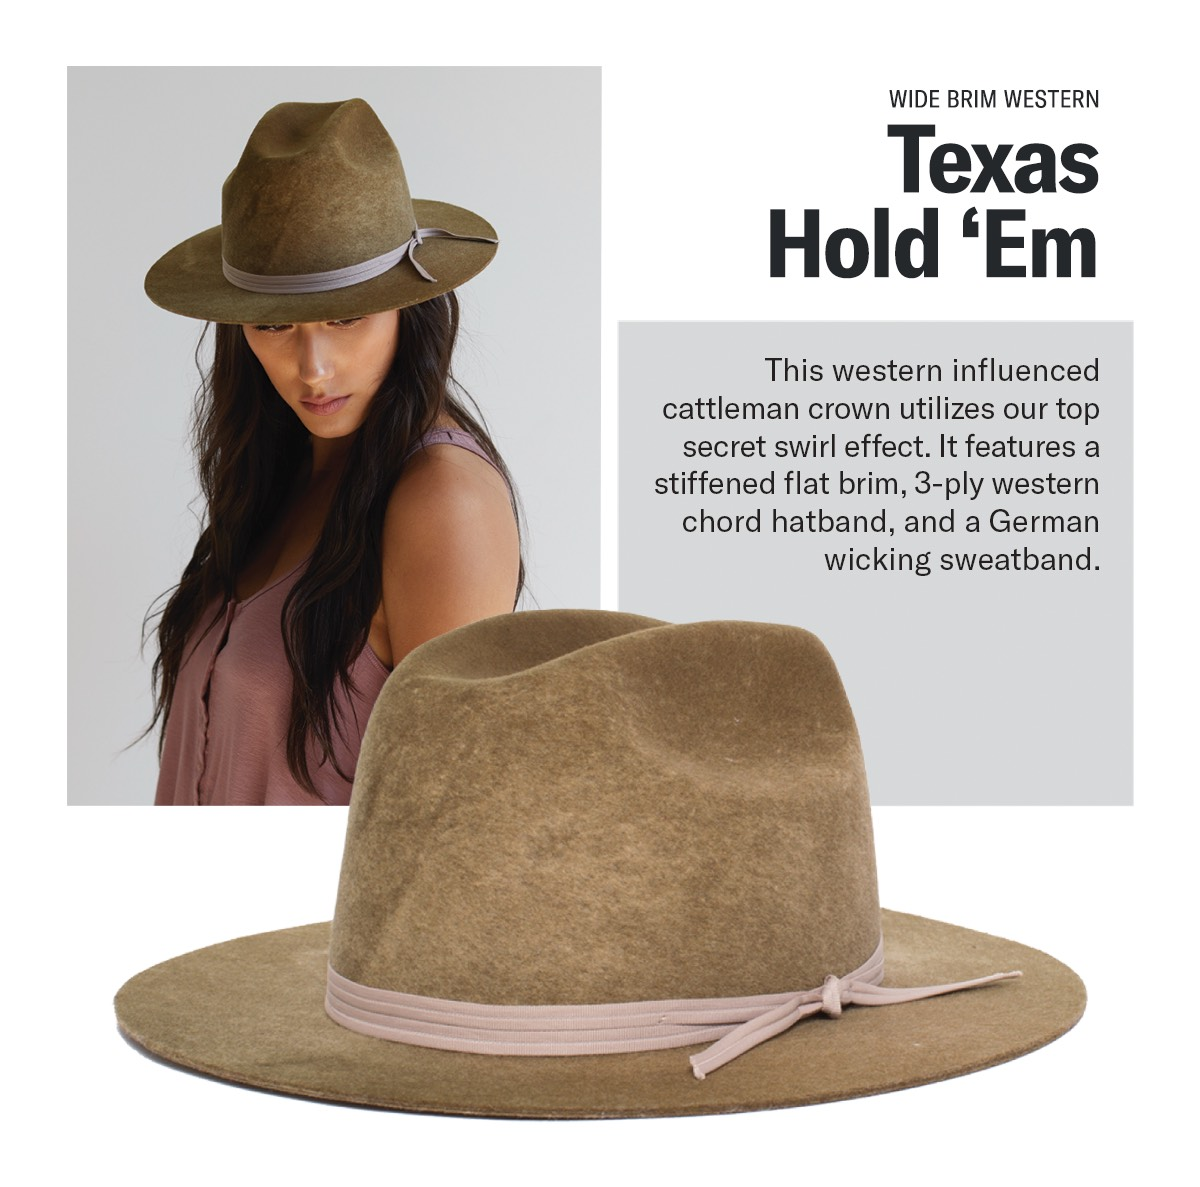 Wide Brim Western | TEXAS HOLD 'EM | This western influenced cattleman crown utilizes our top secret swirl effect. It features a stiffened flat brim. 3-ply, western chord hatband, and a German wicking sweatband.